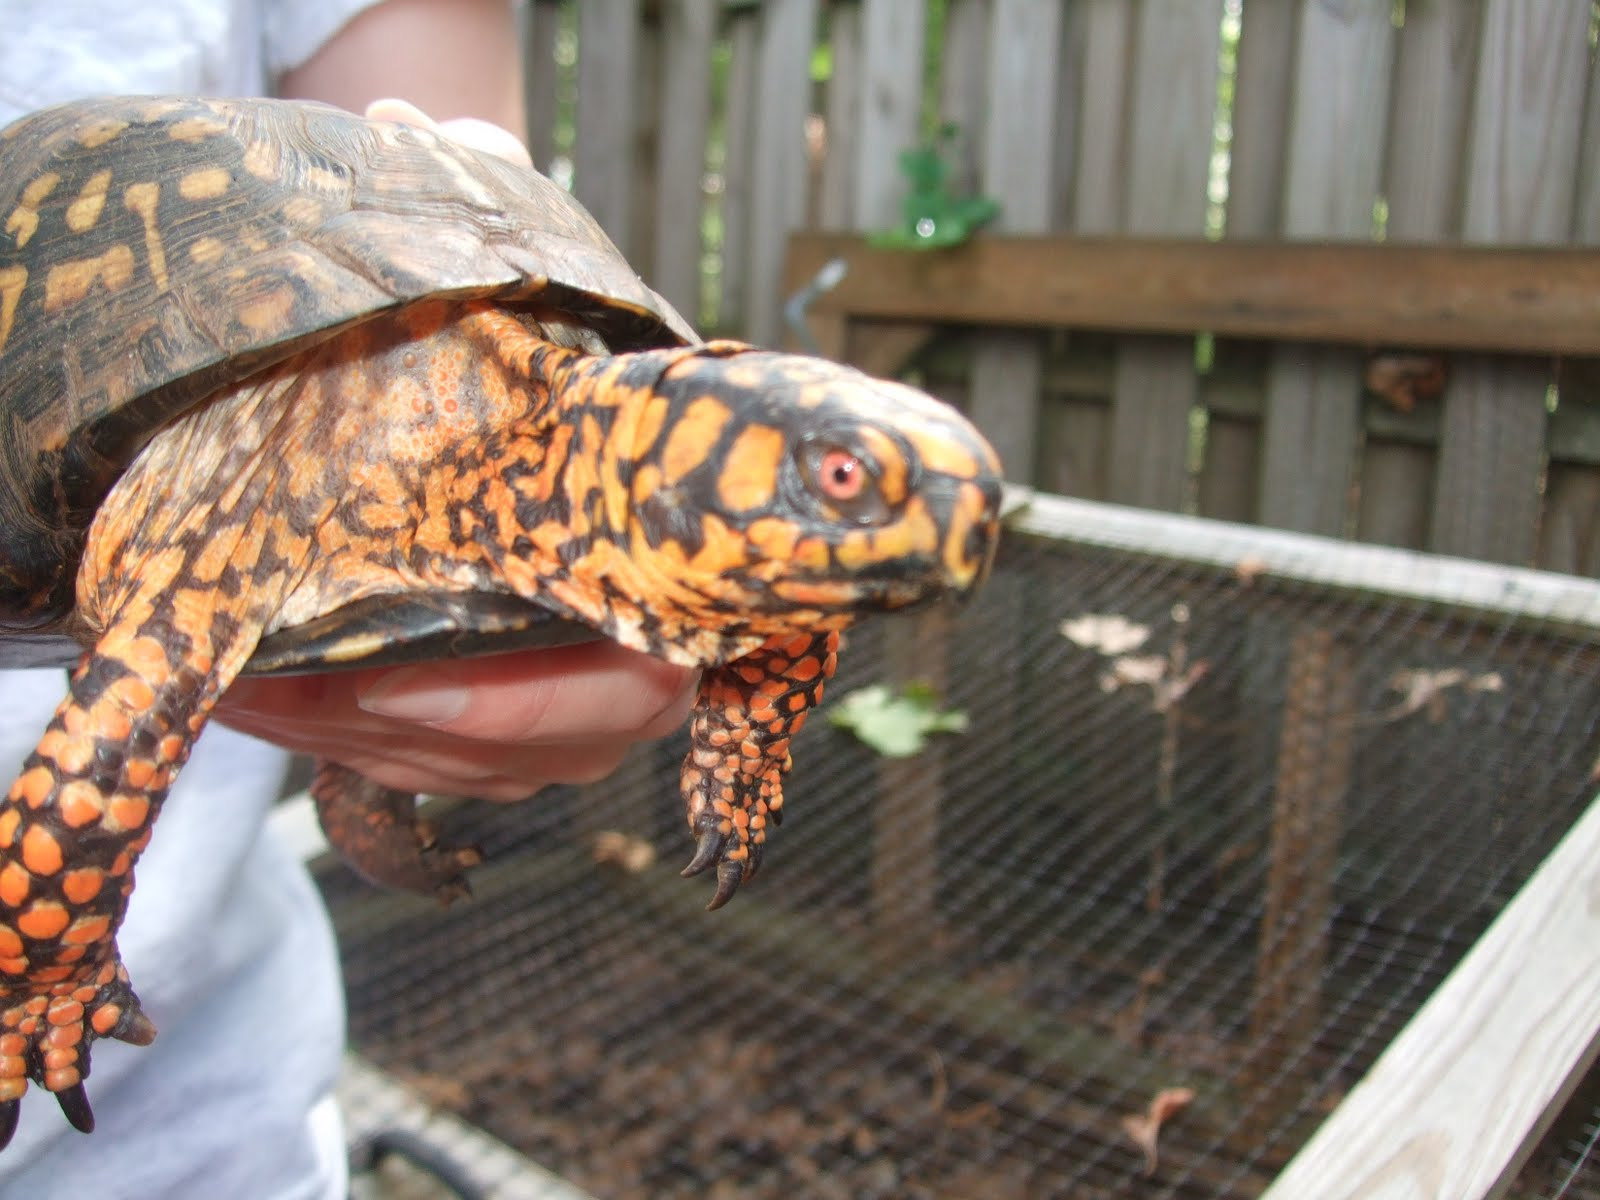 Male Eastern Box Turtle Was a Male Box Turtle And